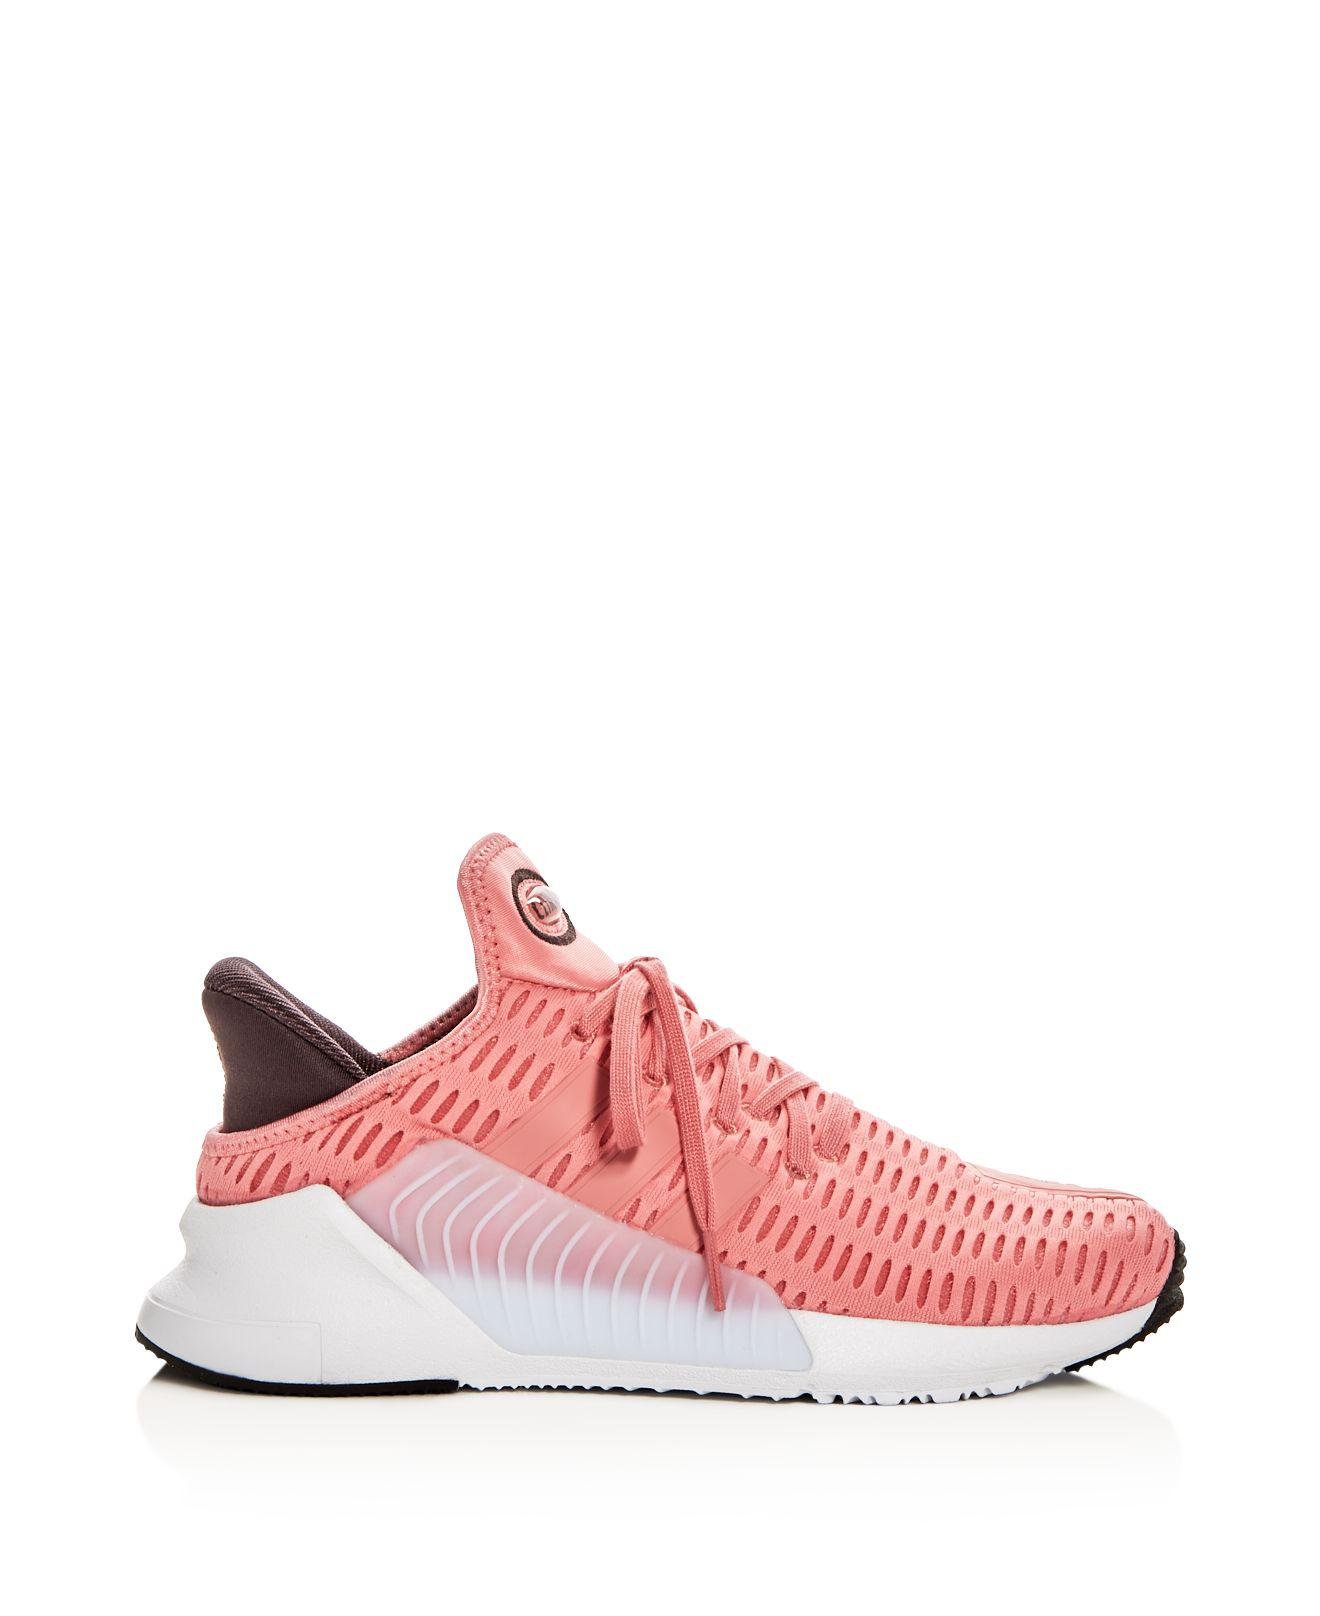 adidas Women's Climacool Lace Up Sneakers cmee8t113n